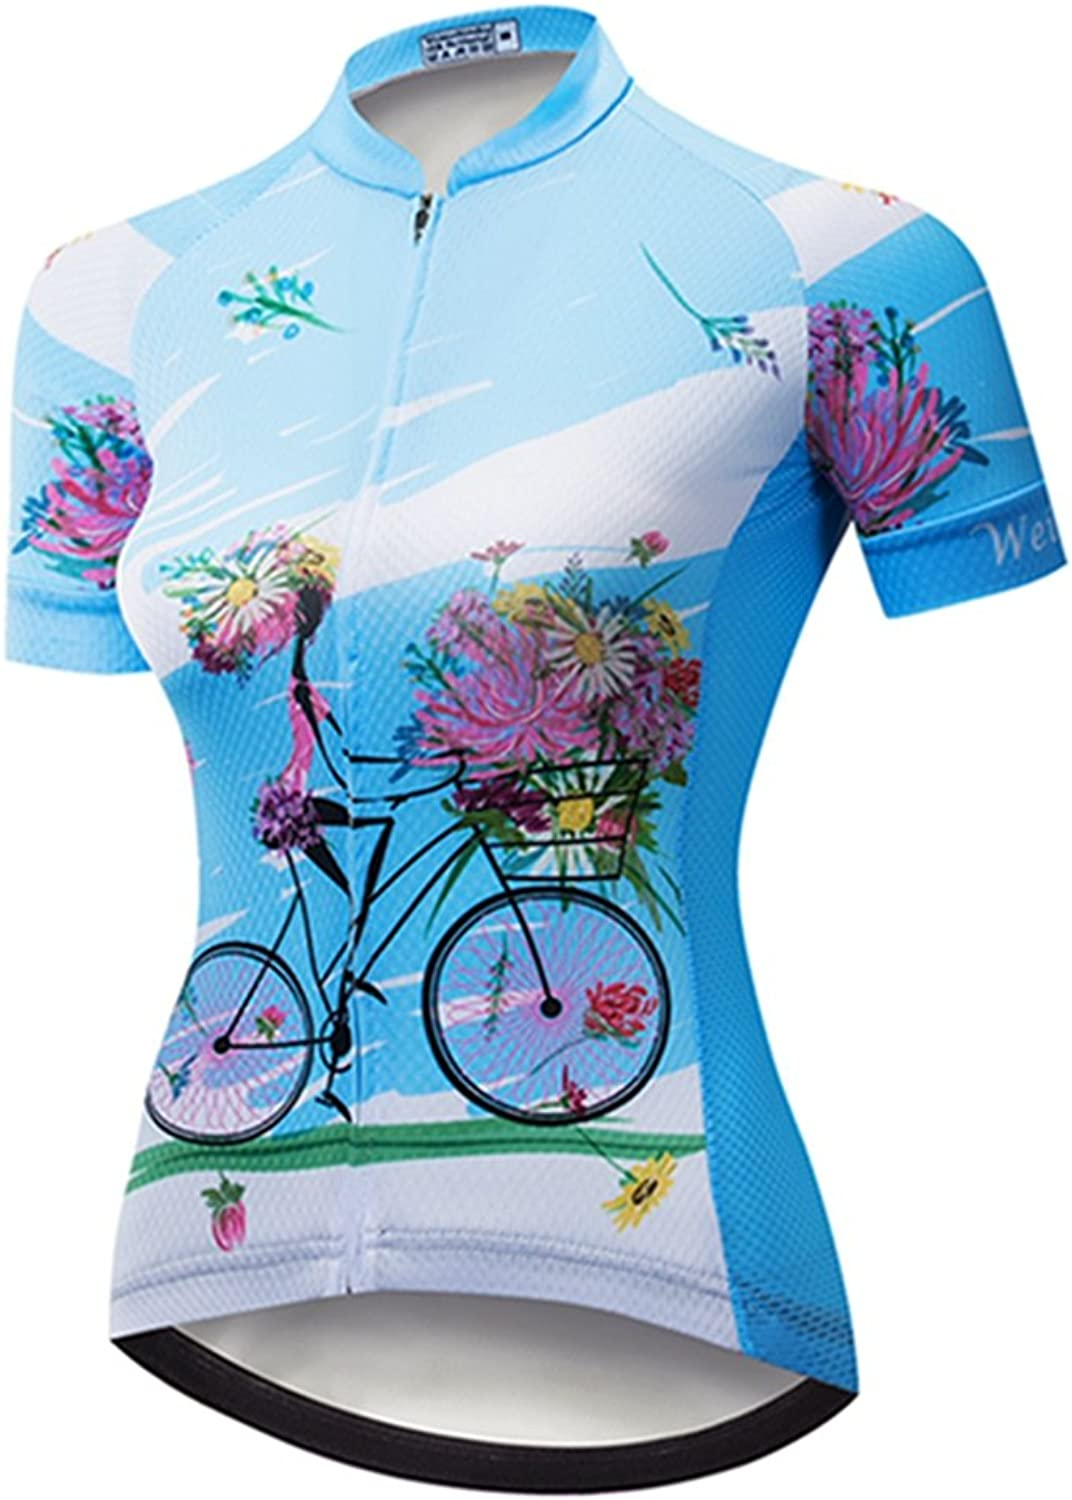 Weimostar Women's Cycling Jersey Short Sleeve Ladies Bike Shirts Bicycle Clothing